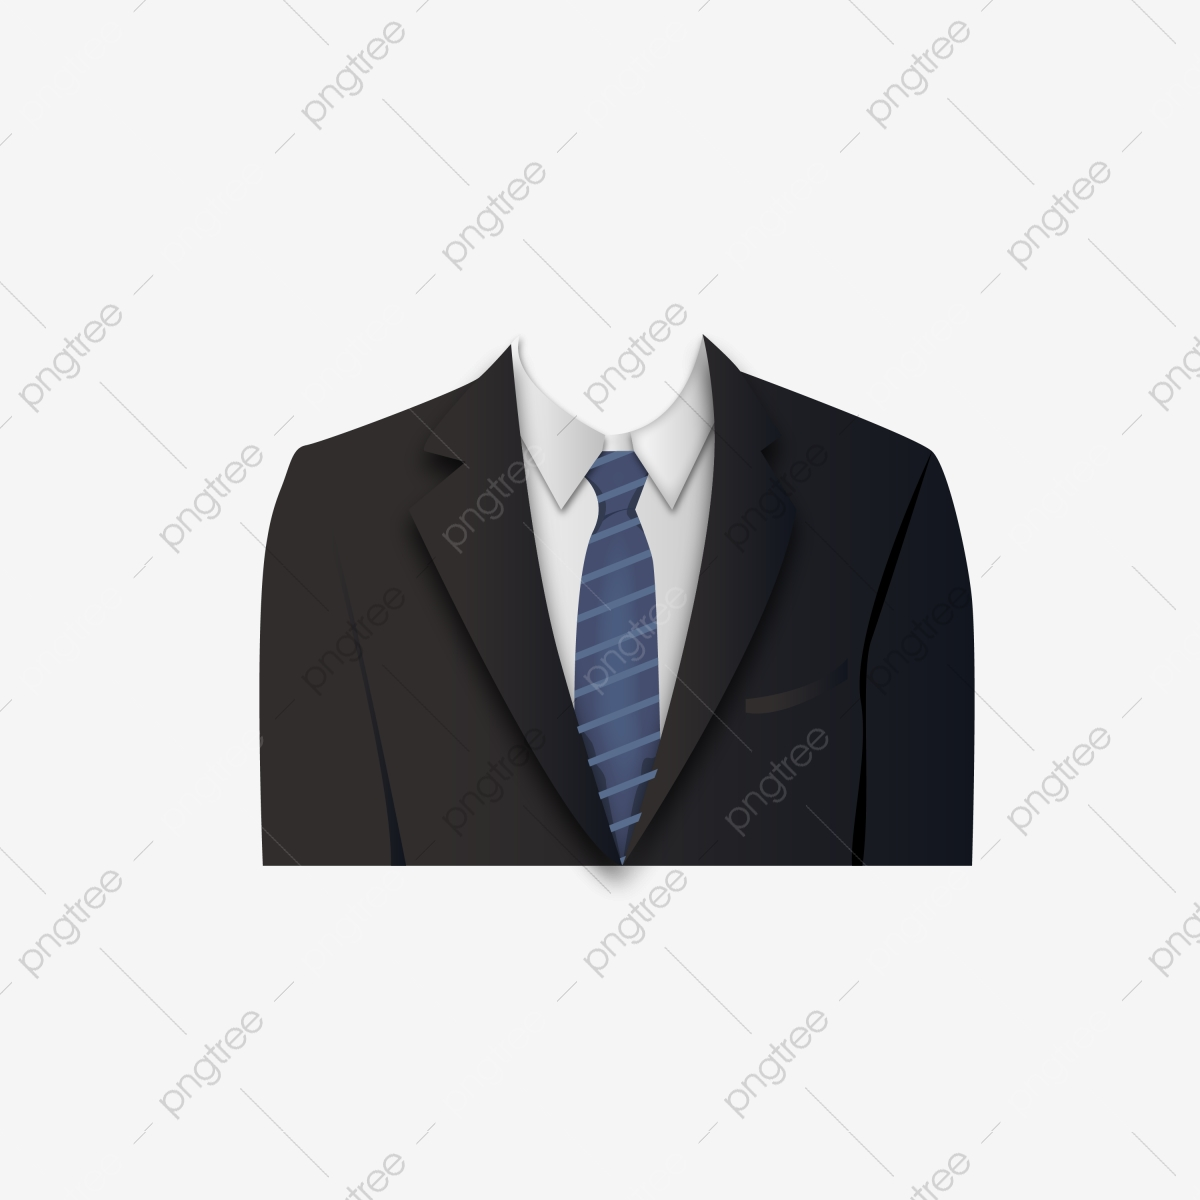 suit png images vector and psd files free download on pngtree https pngtree com freepng clothes suit 5398337 html